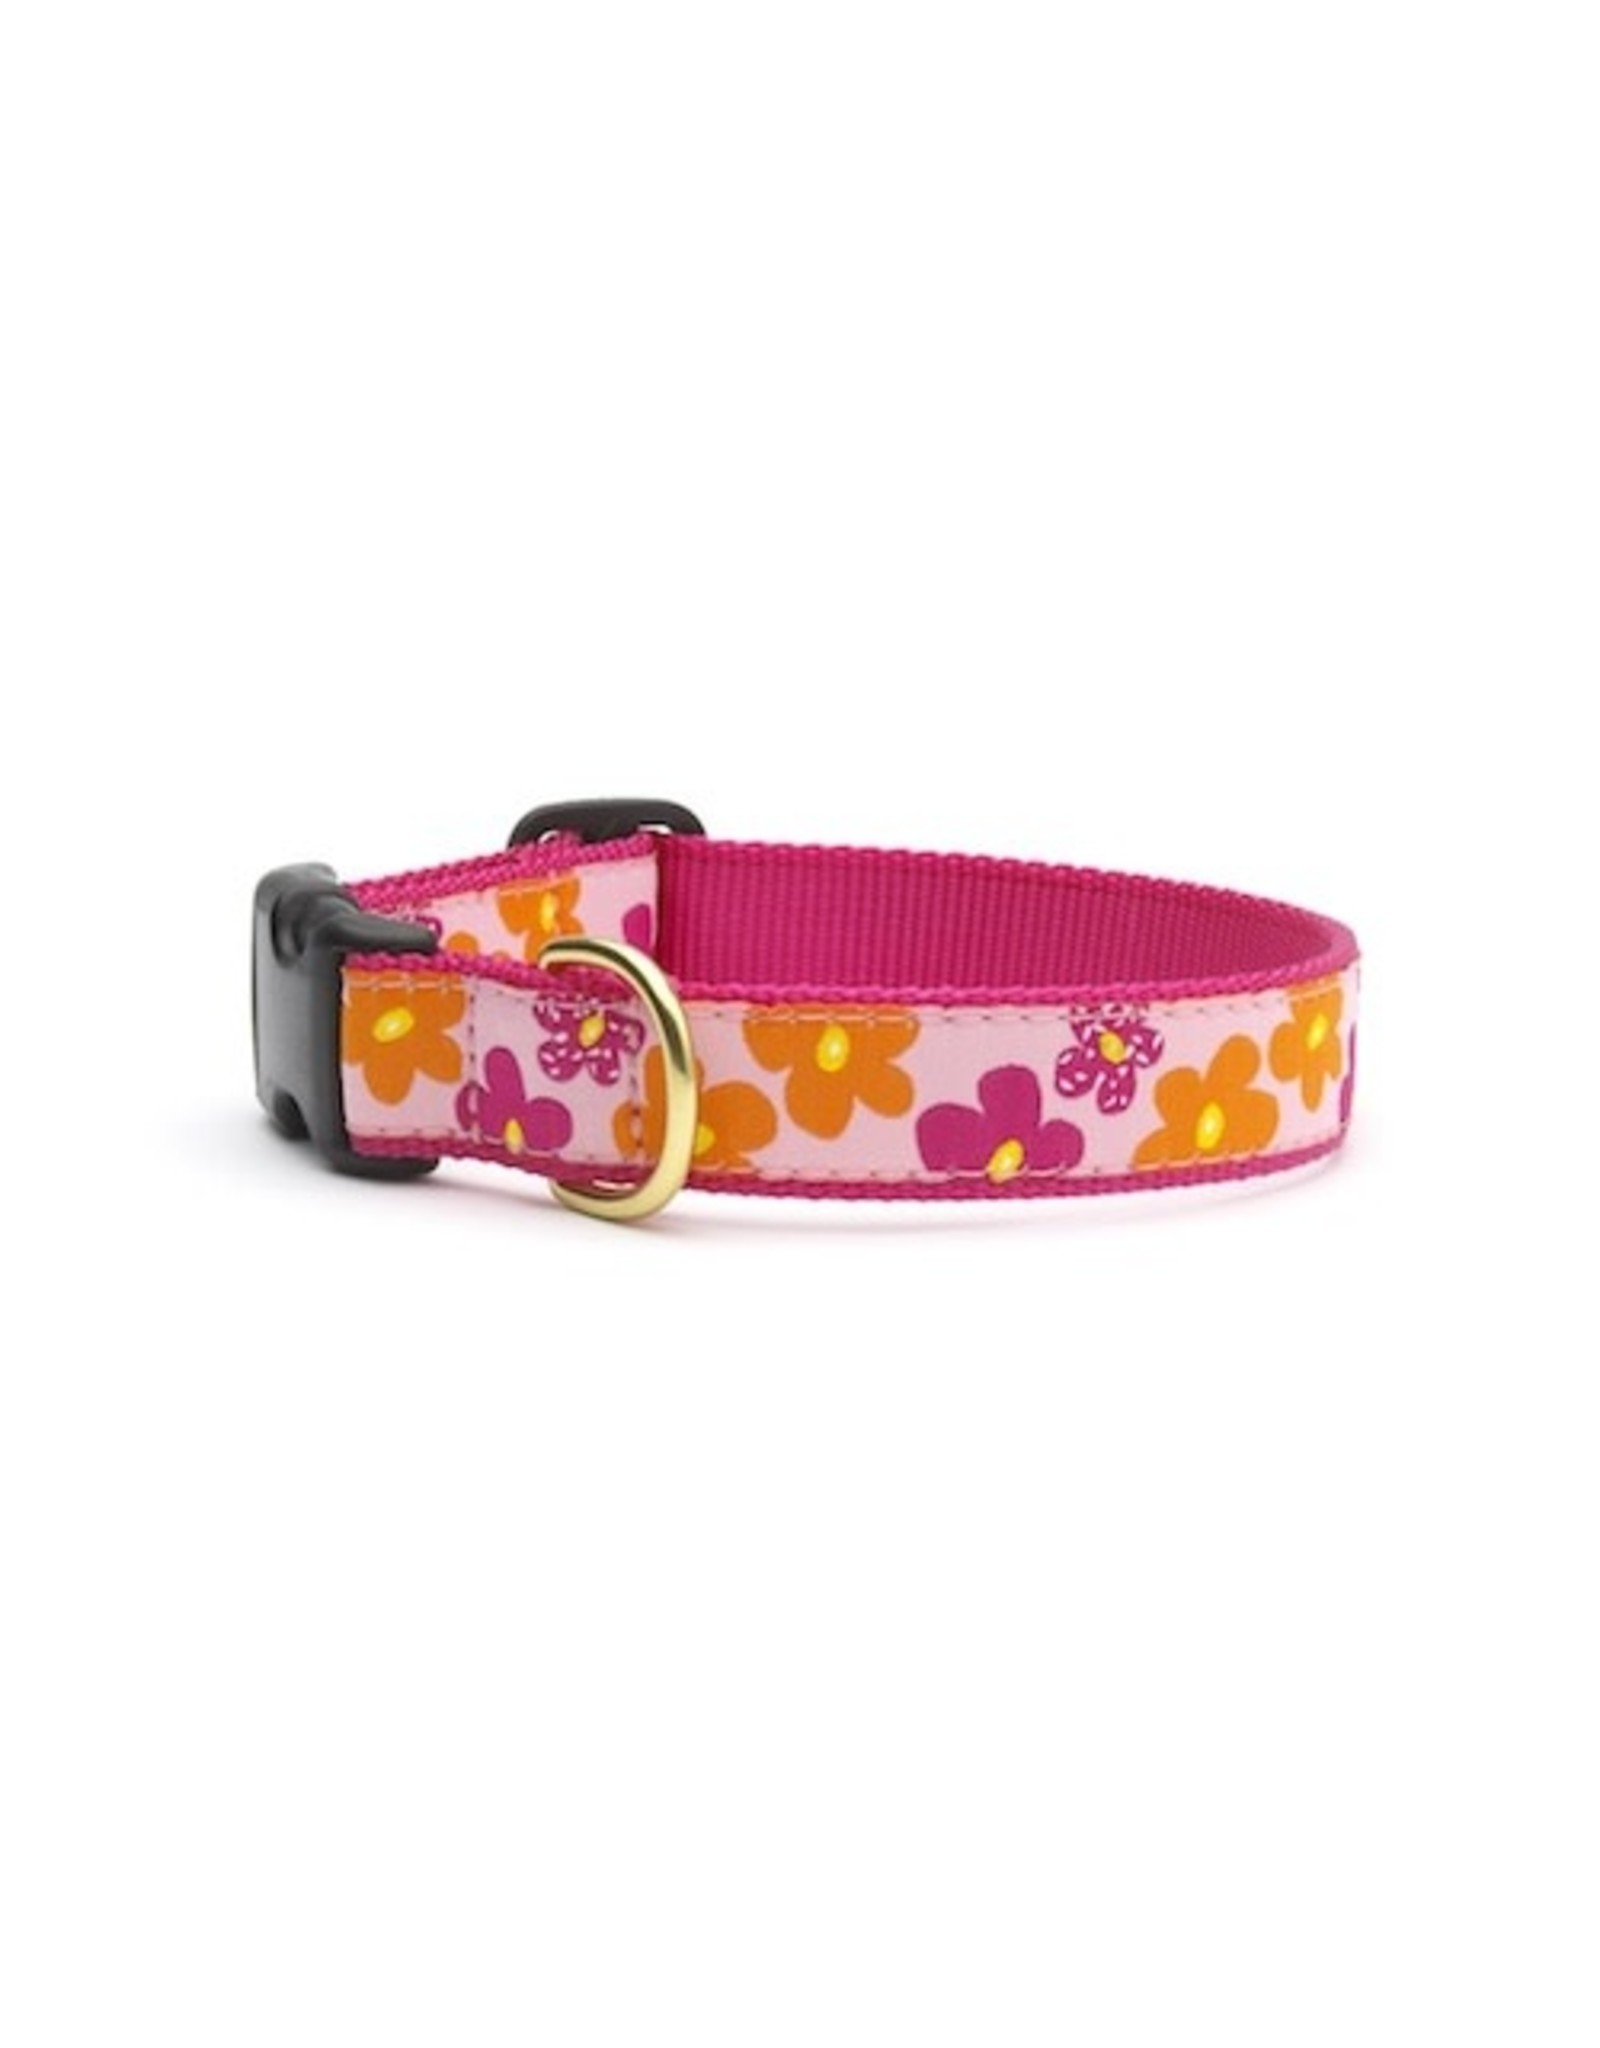 Up Country Flower Power Collar: Narrow, S